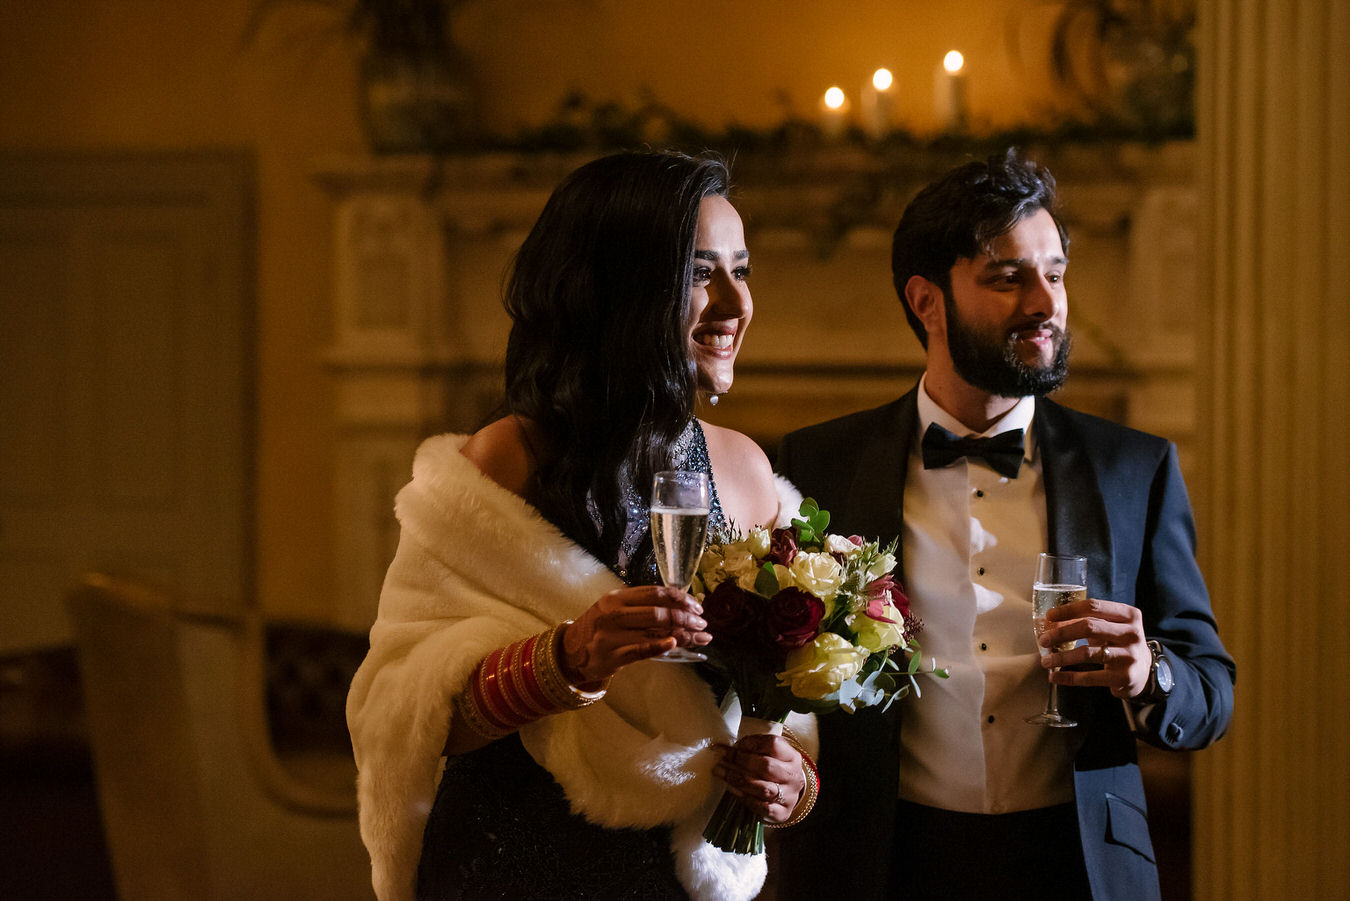 Asian bride with a white fur shawl and groom with black smoking suit, having champagne glasses in hands are having fun.